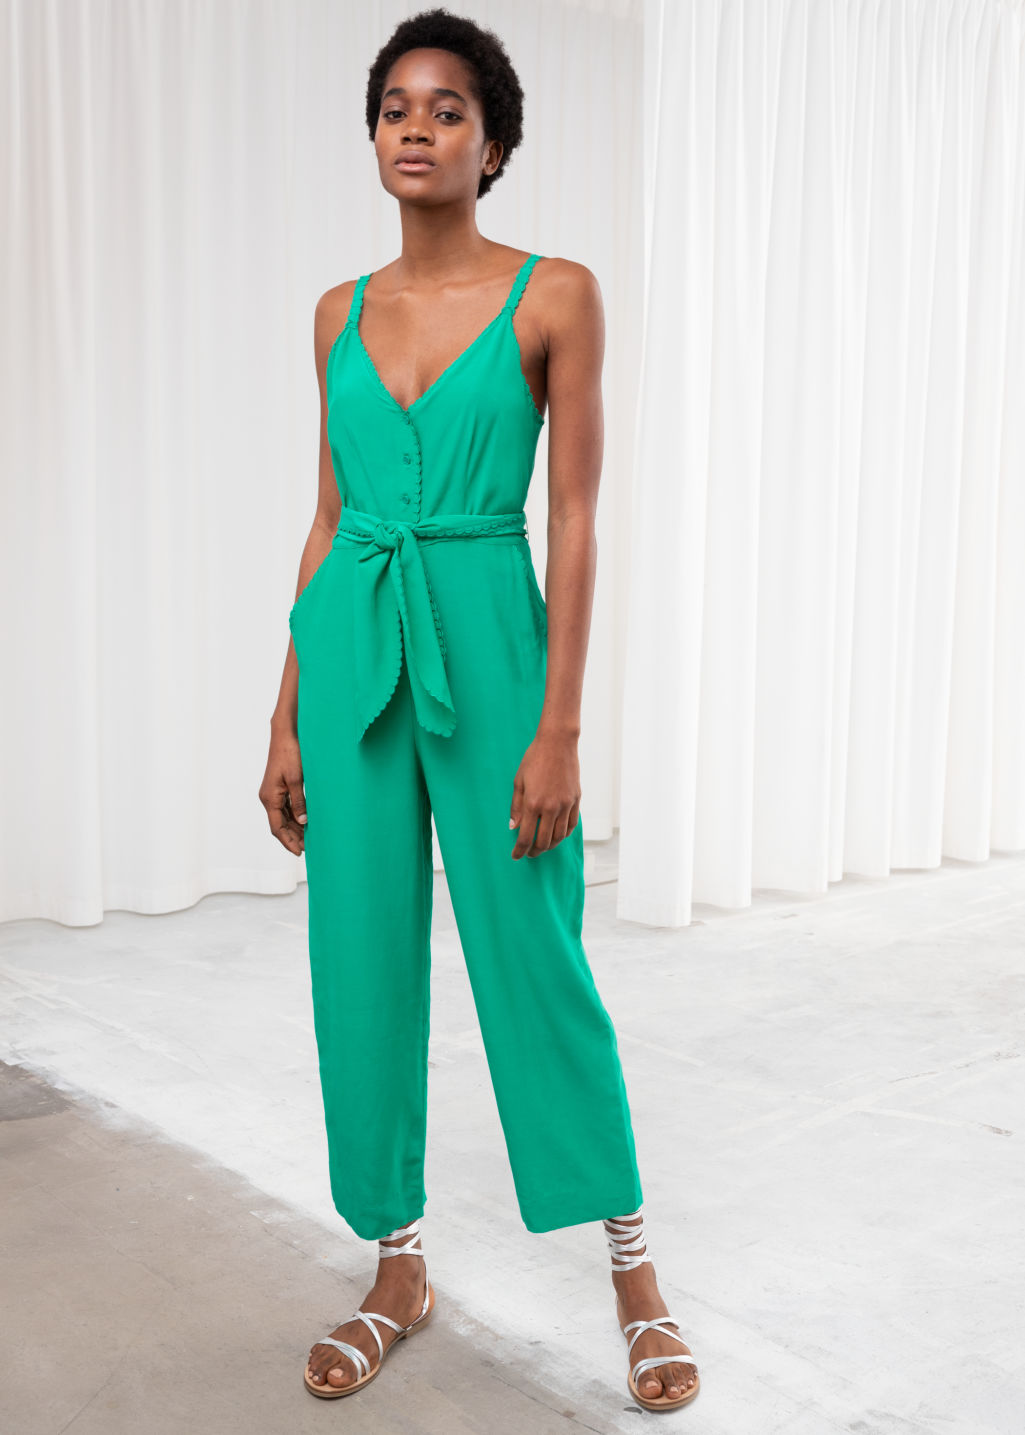 c9c7a268535c Belted Scallop Edge Jumpsuit - Green - Jumpsuits   Playsuits ...